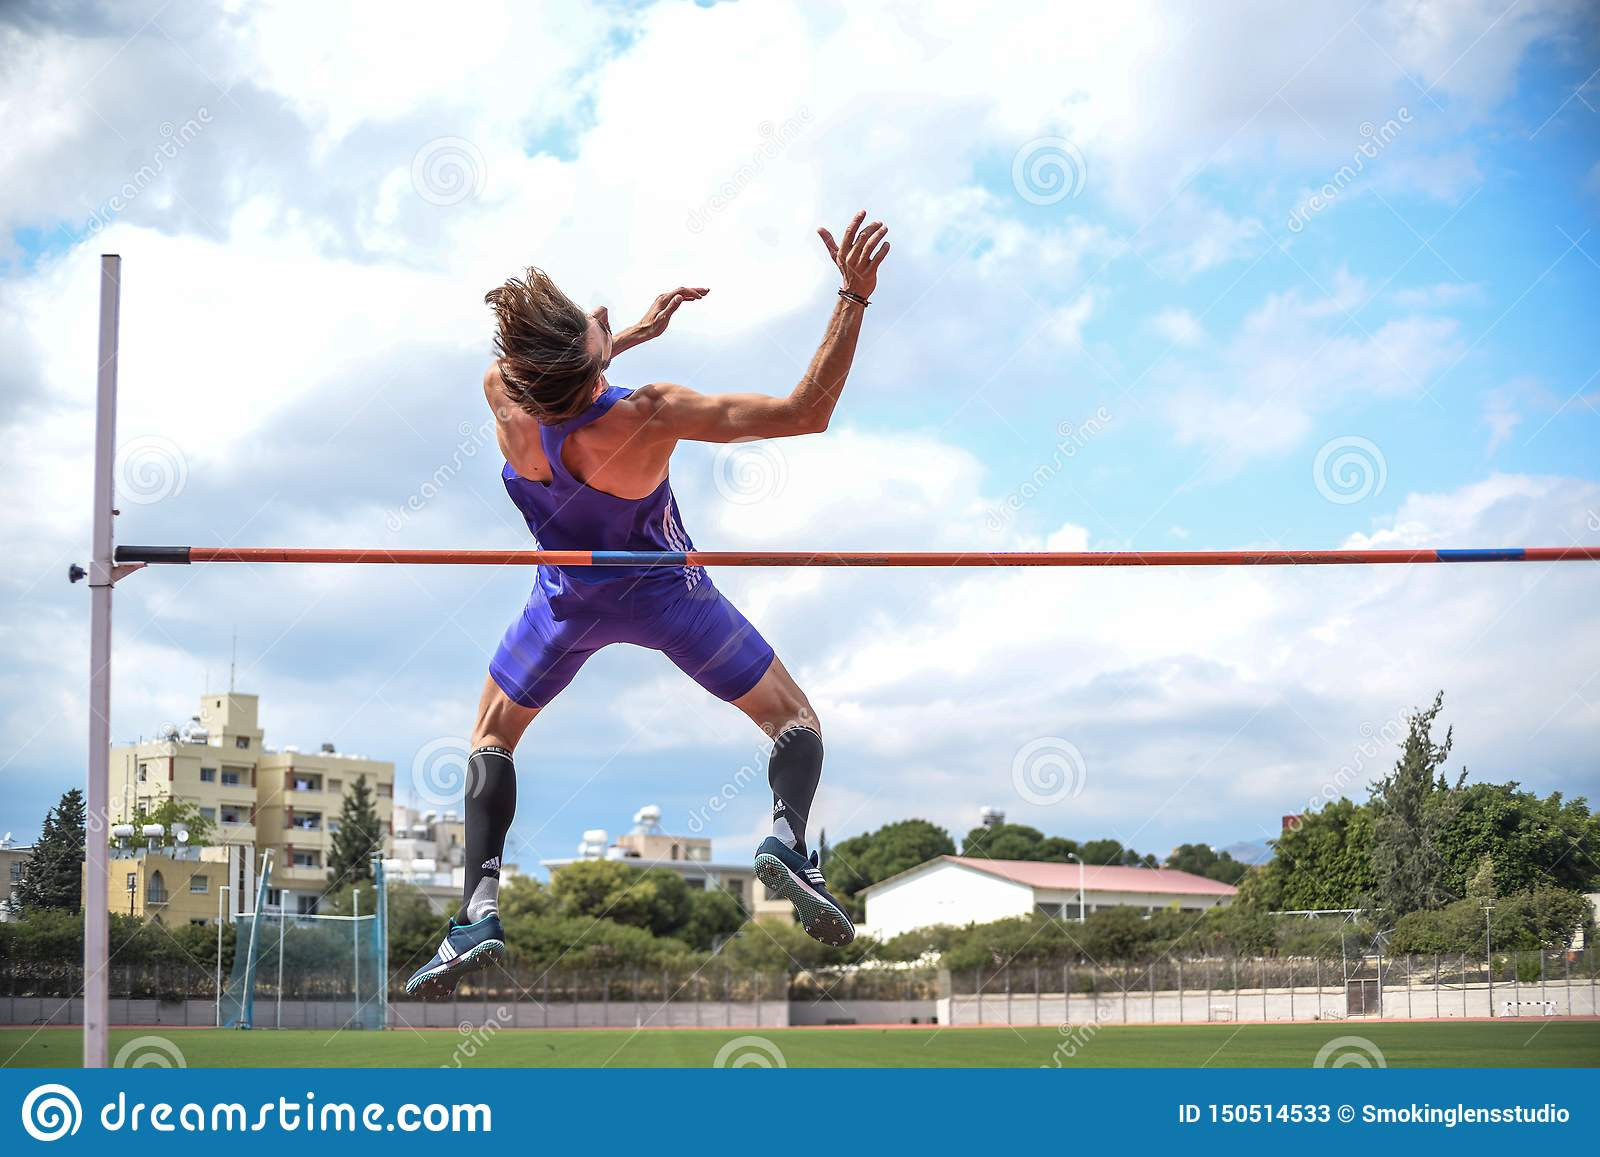 High jump athlete while he jumps. Closeup